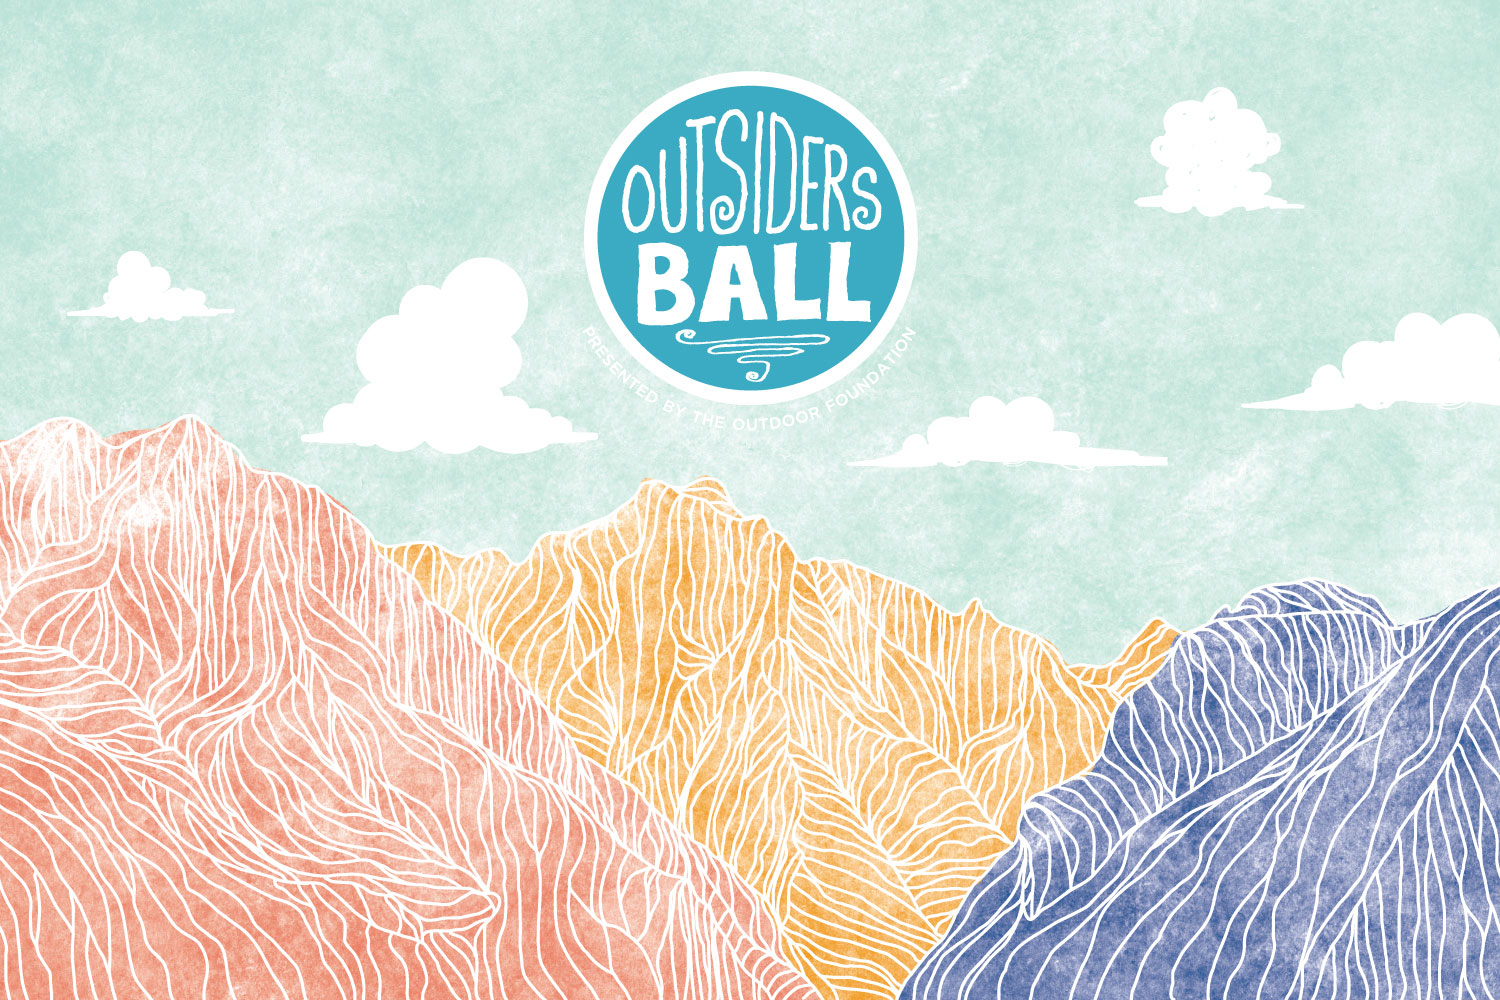 outsiders-ball-logo.jpg